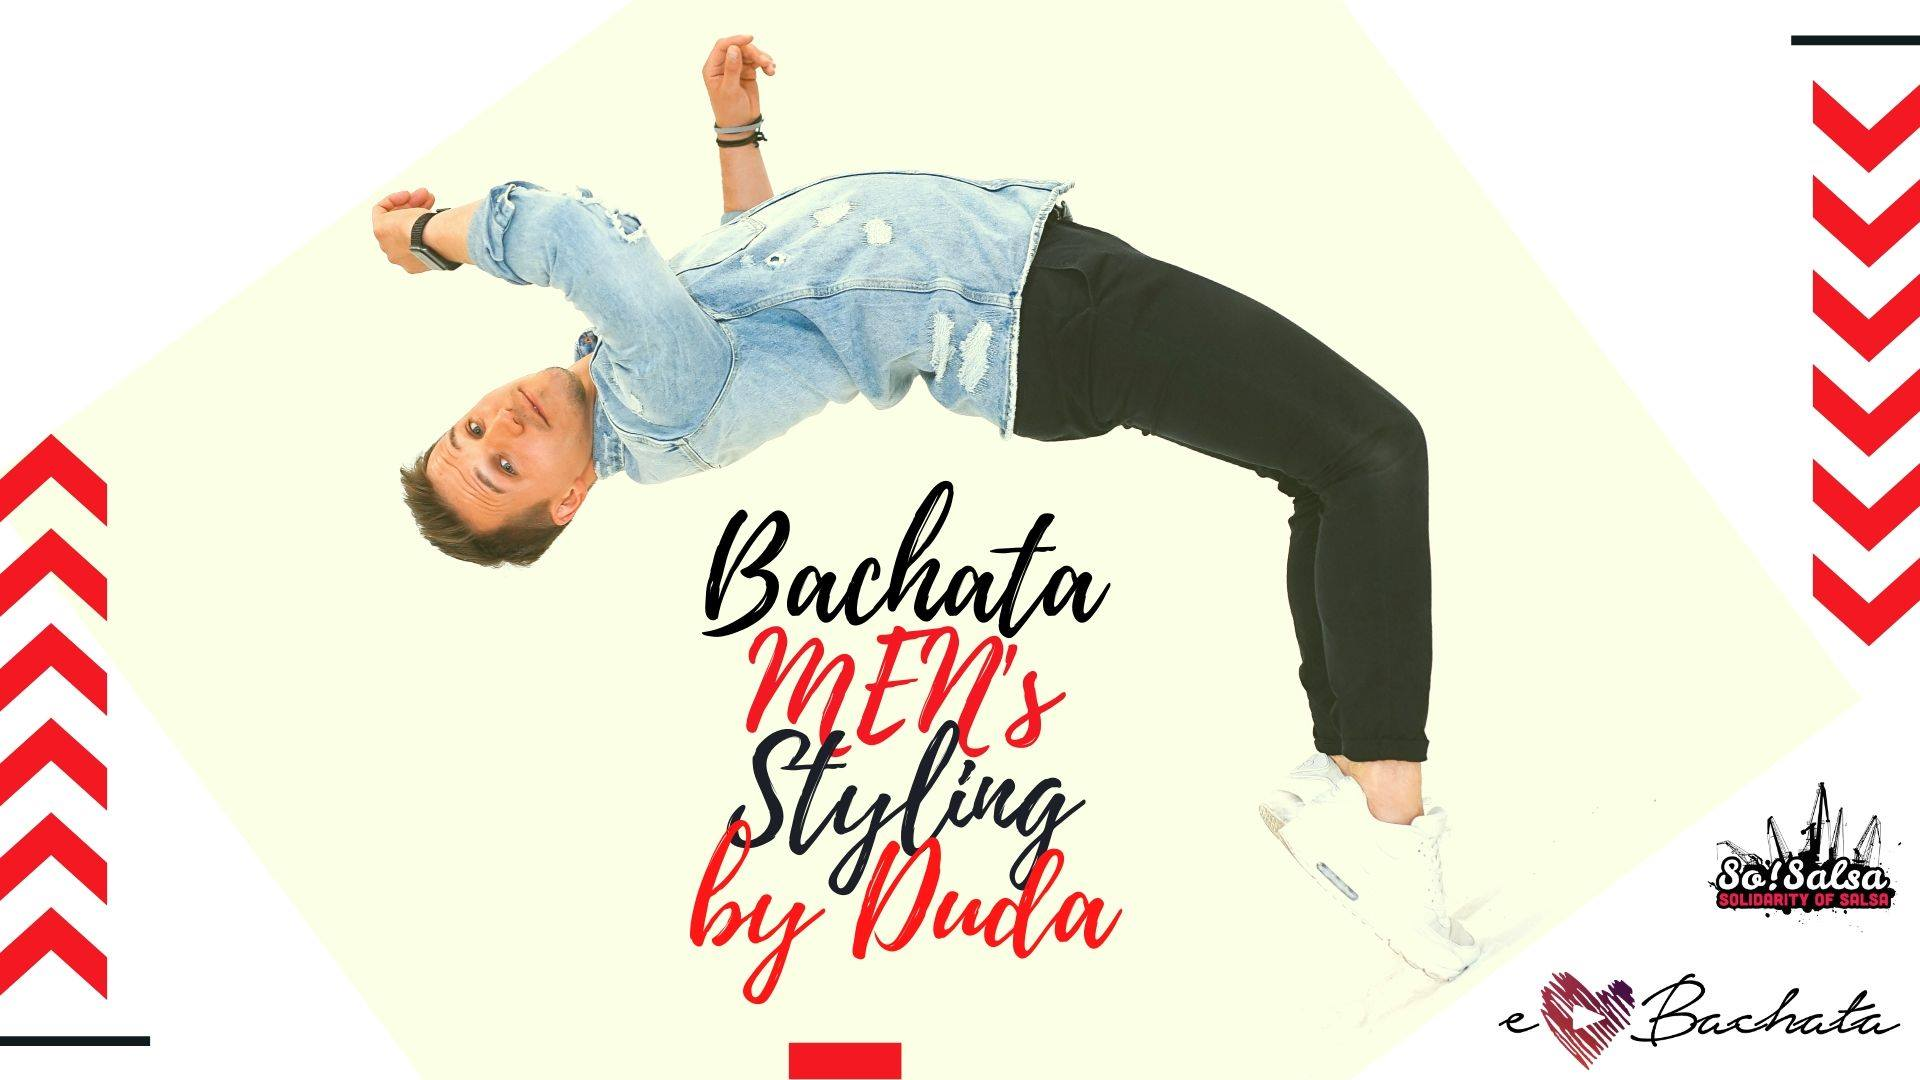 Projekt Bachata Men's Styling by DUDA w So!Salsa